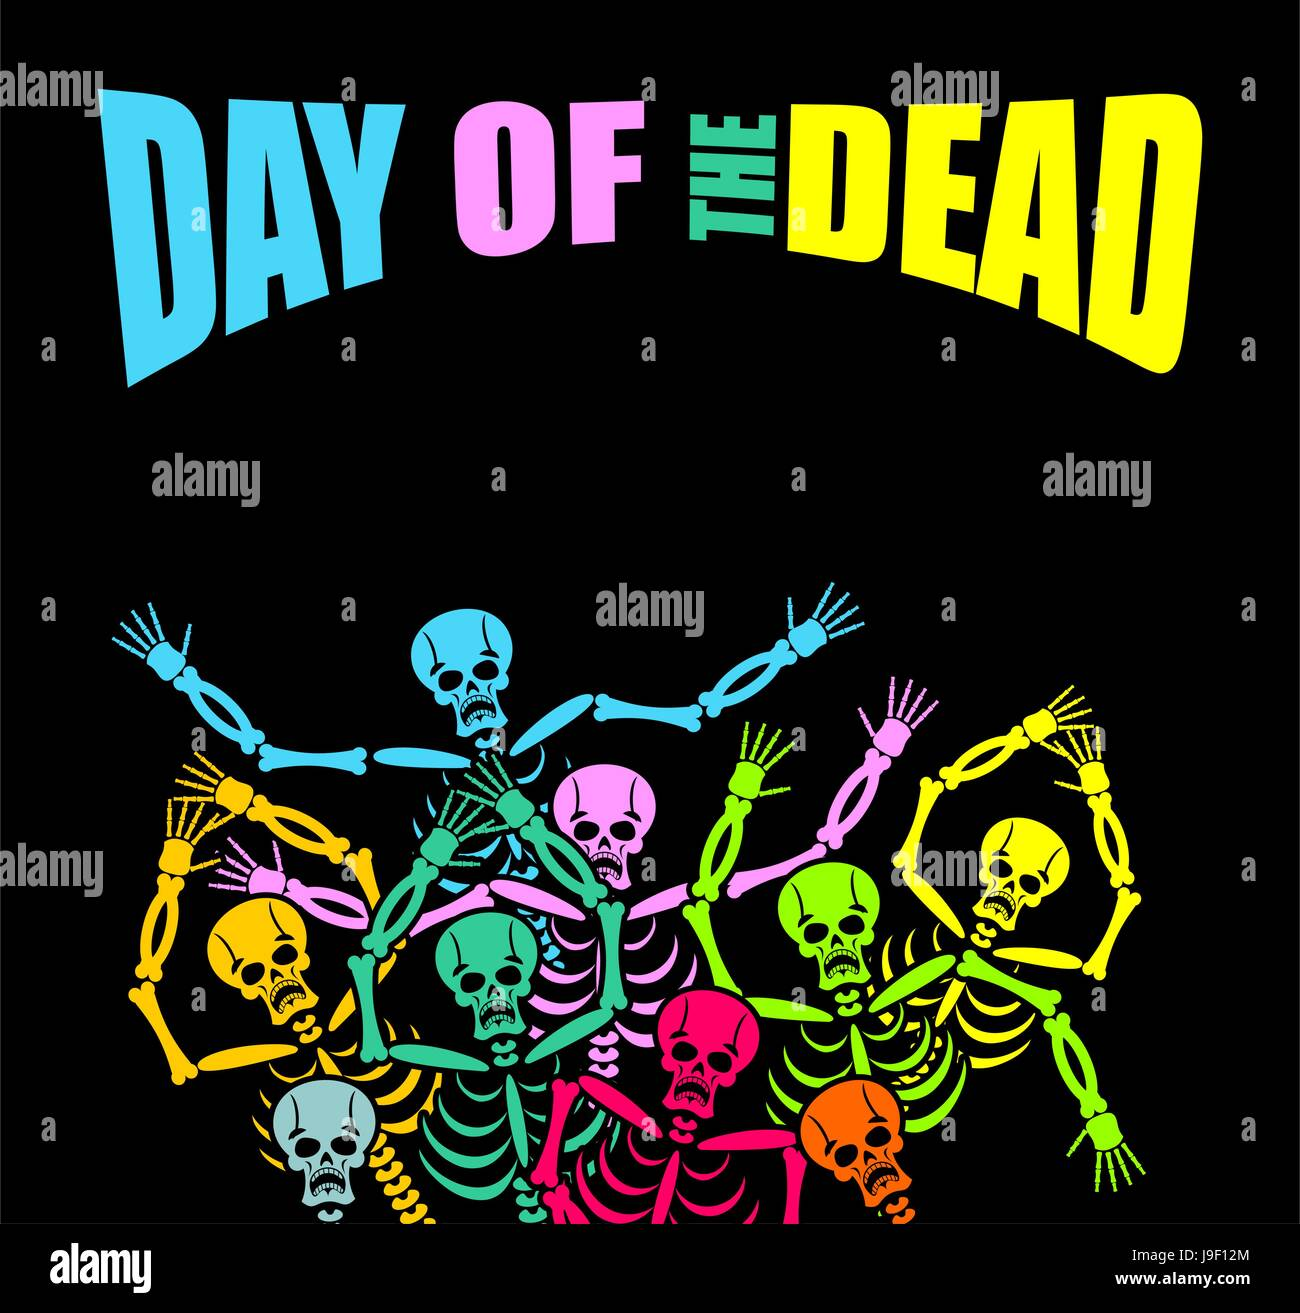 Day Of The Dead Multicolored Skeleton Color Skull Background For National Holiday In Mexico Mexican Terrible Feast